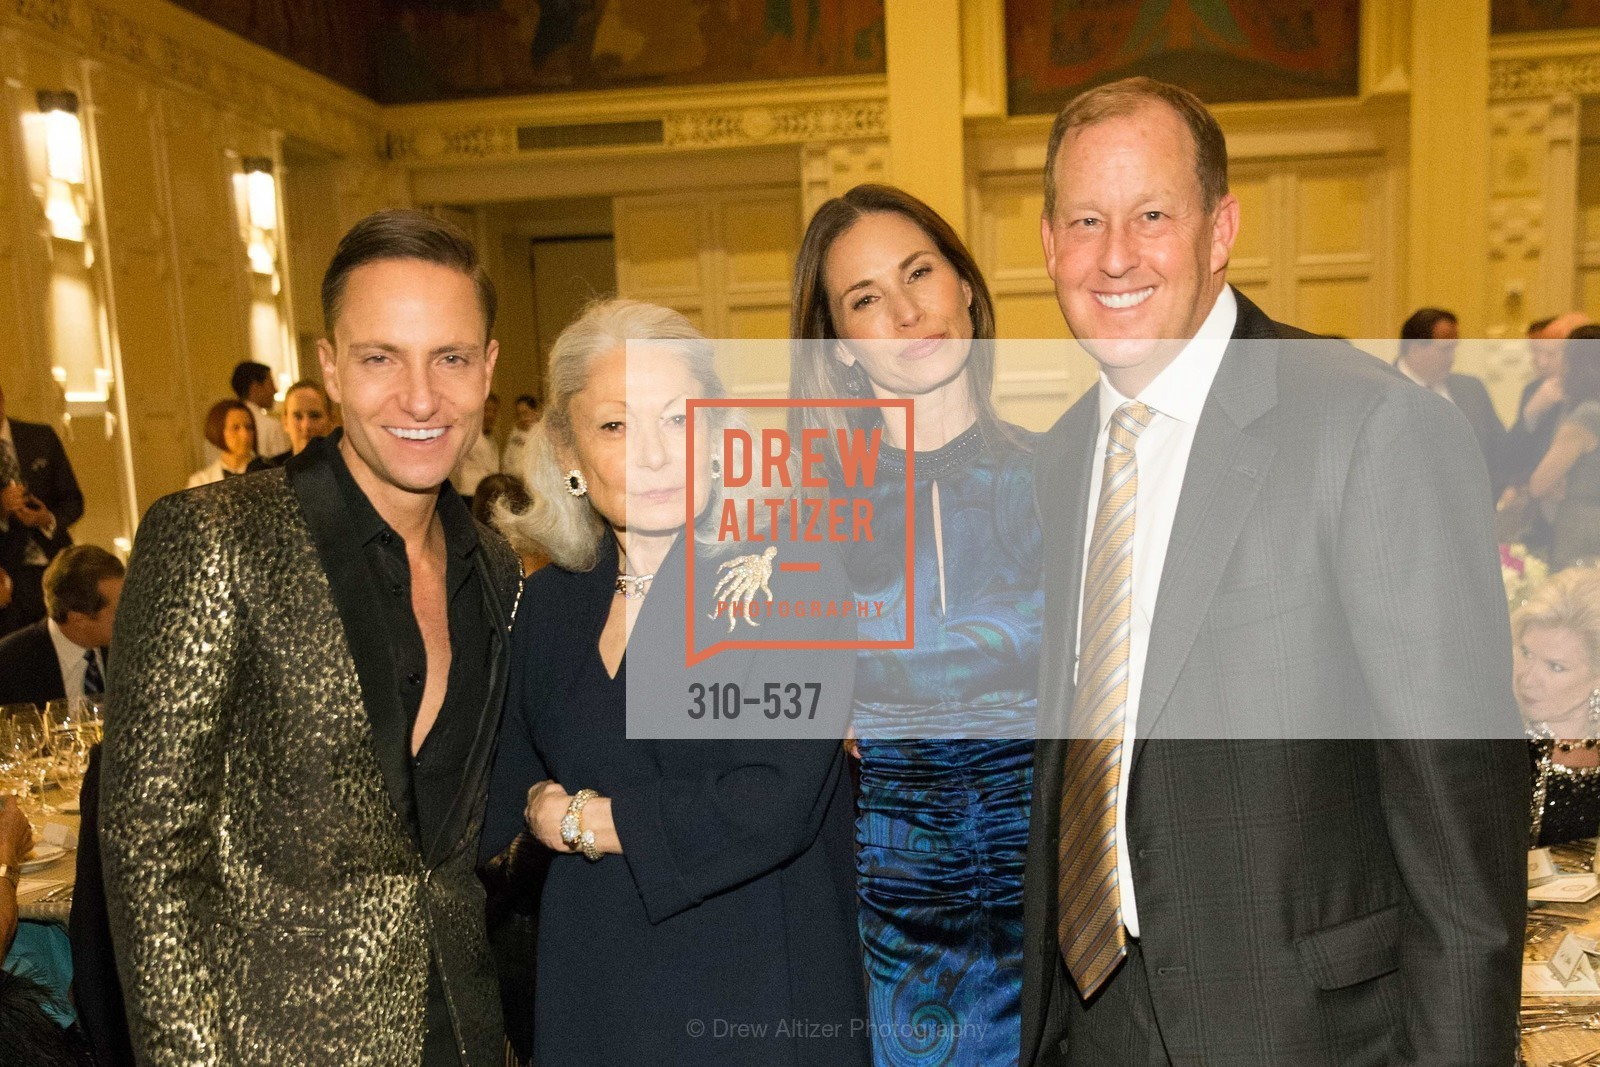 Ken Fulk, Denise Hale, Patty Rosenfeld, Michael Rosenfeld, TOP OF THE MARK'S 75TH Anniversary Party, US, November 7th, 2014,Drew Altizer, Drew Altizer Photography, full-service event agency, private events, San Francisco photographer, photographer California